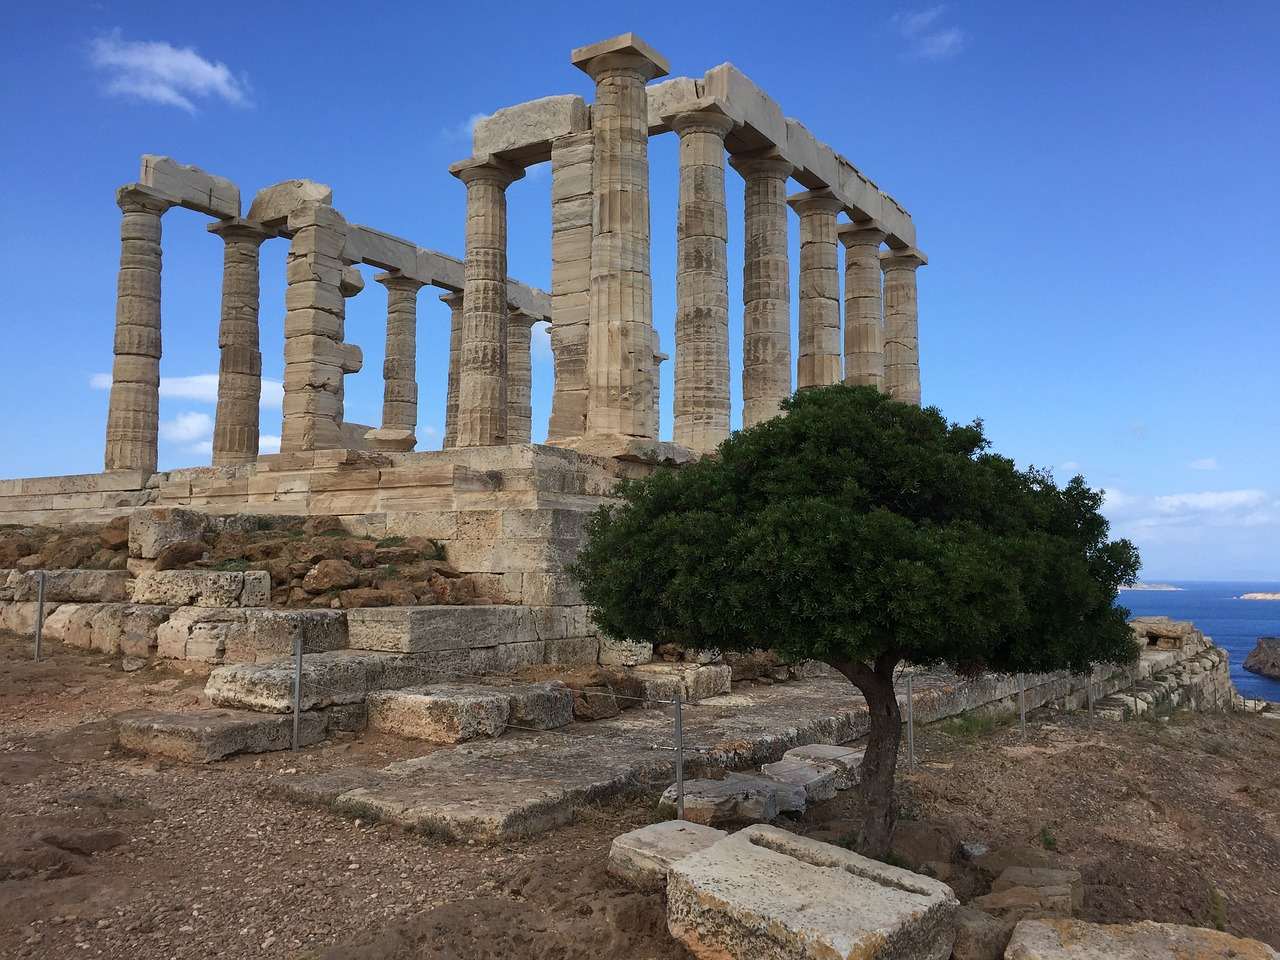 Experience a unique Percy Jackson tour to the Temple of Poseidon, and discover Greek mythology and legends along the way